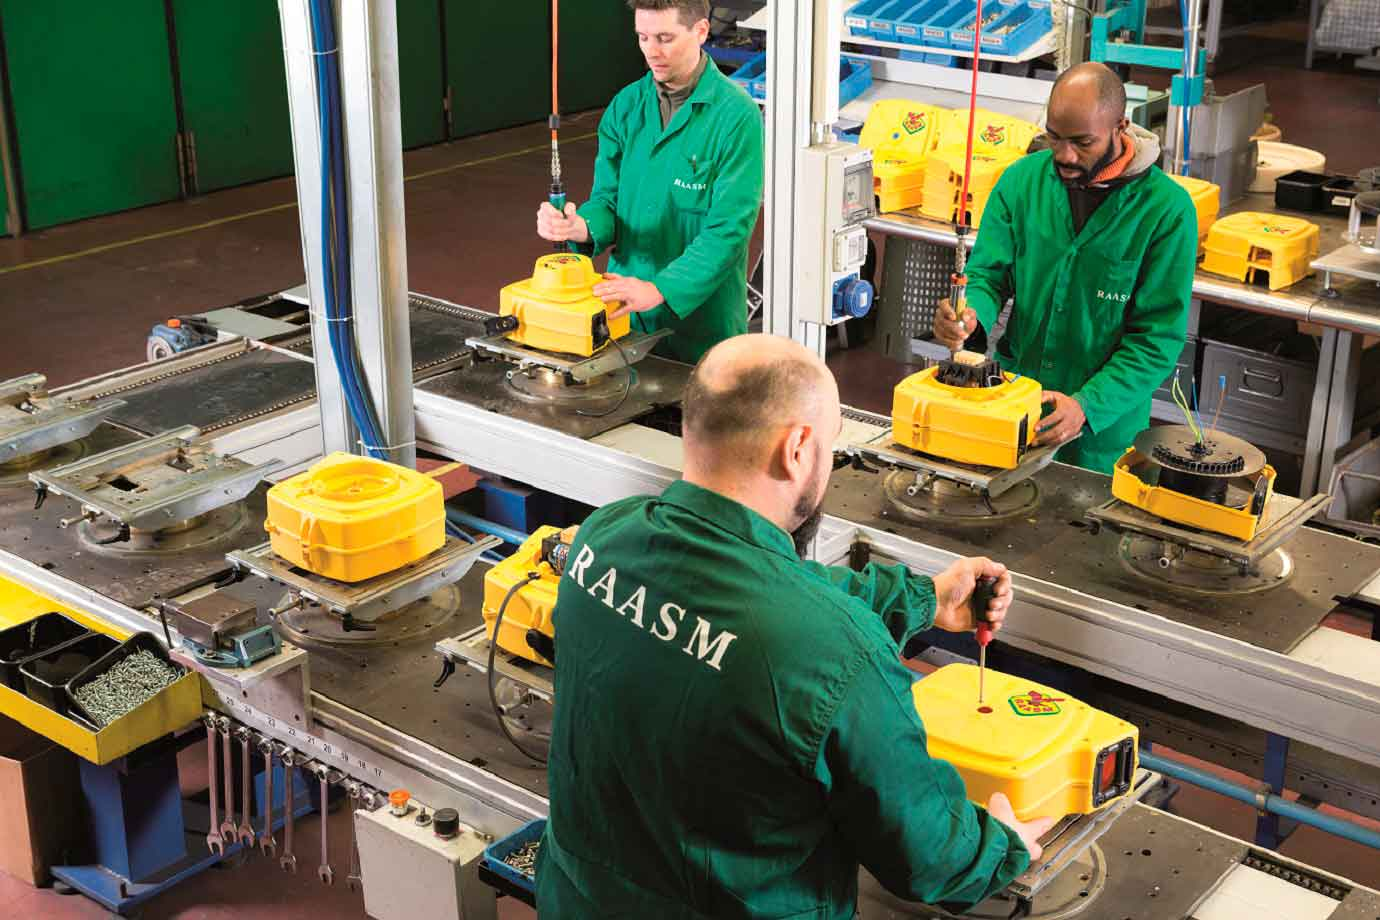 RAASM NEW ELECTRIC CABLE REELS